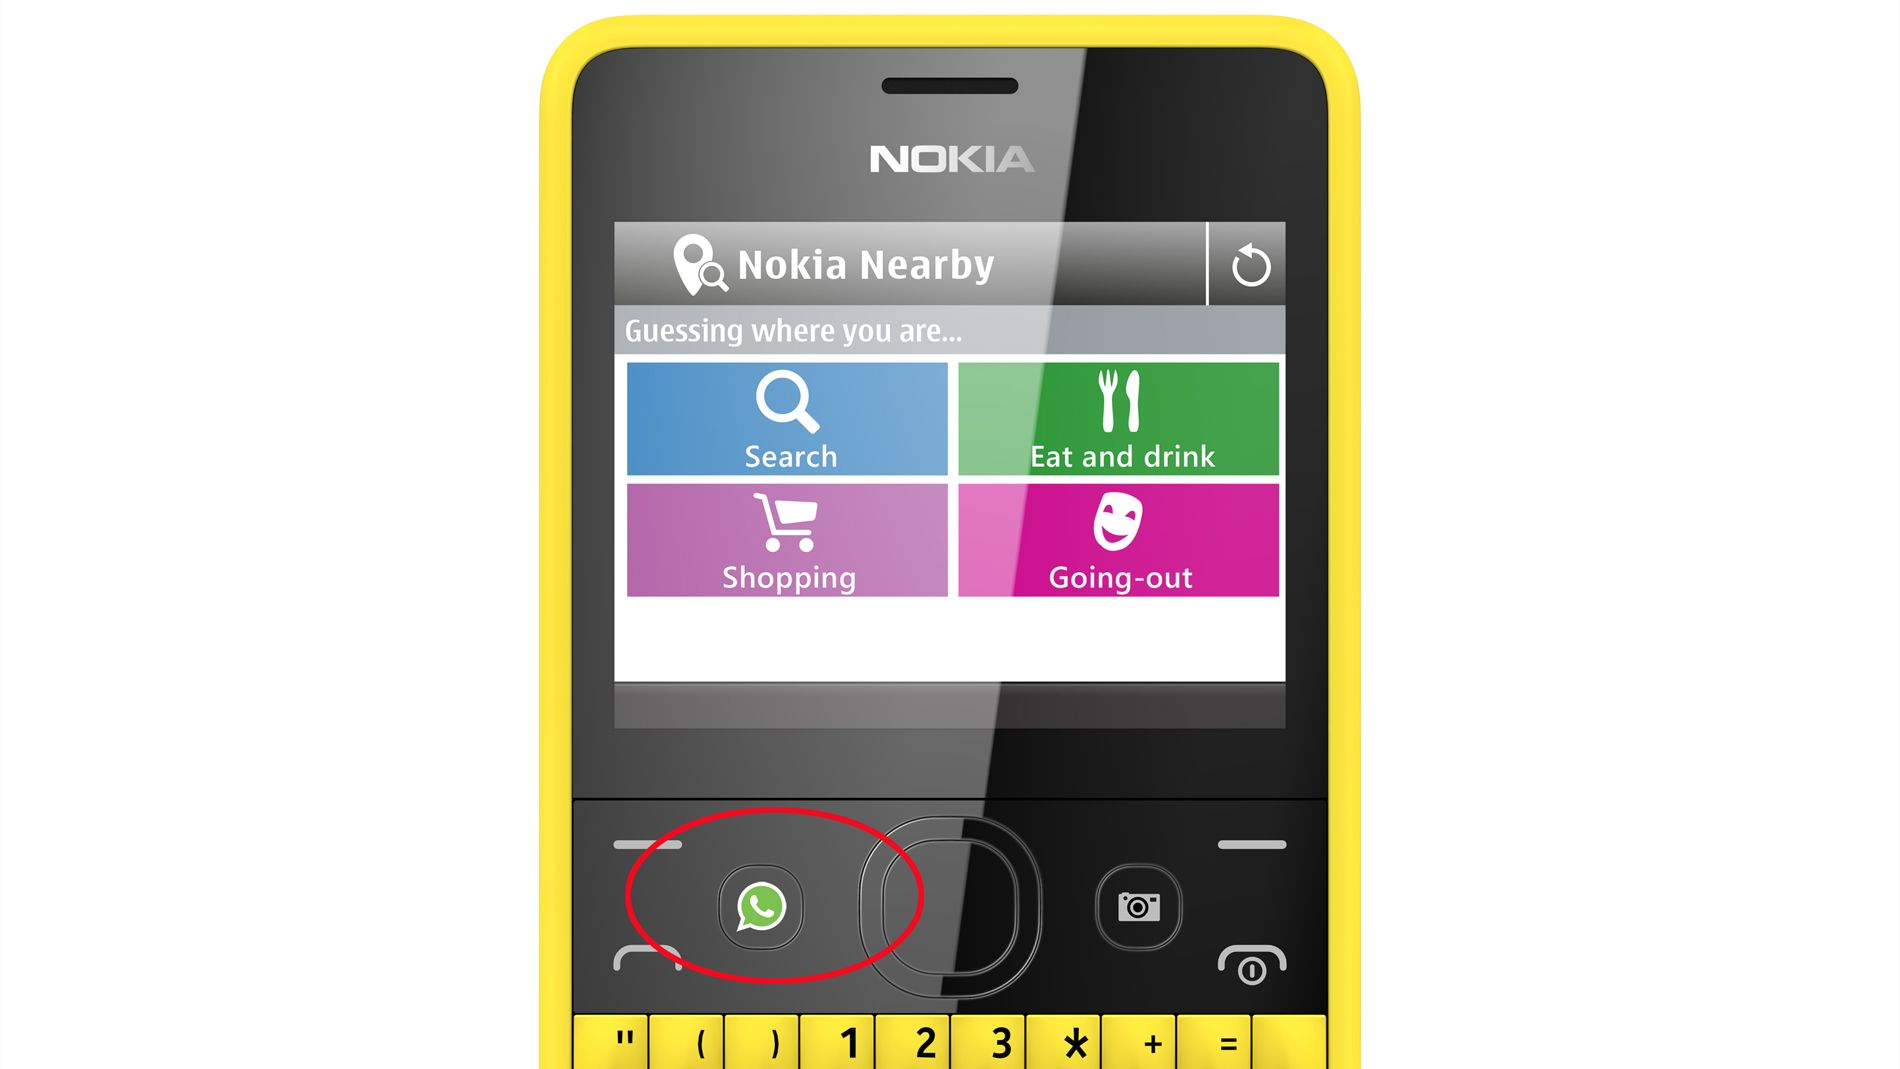 Nokia has added a WhatsApp button for instant messaging to